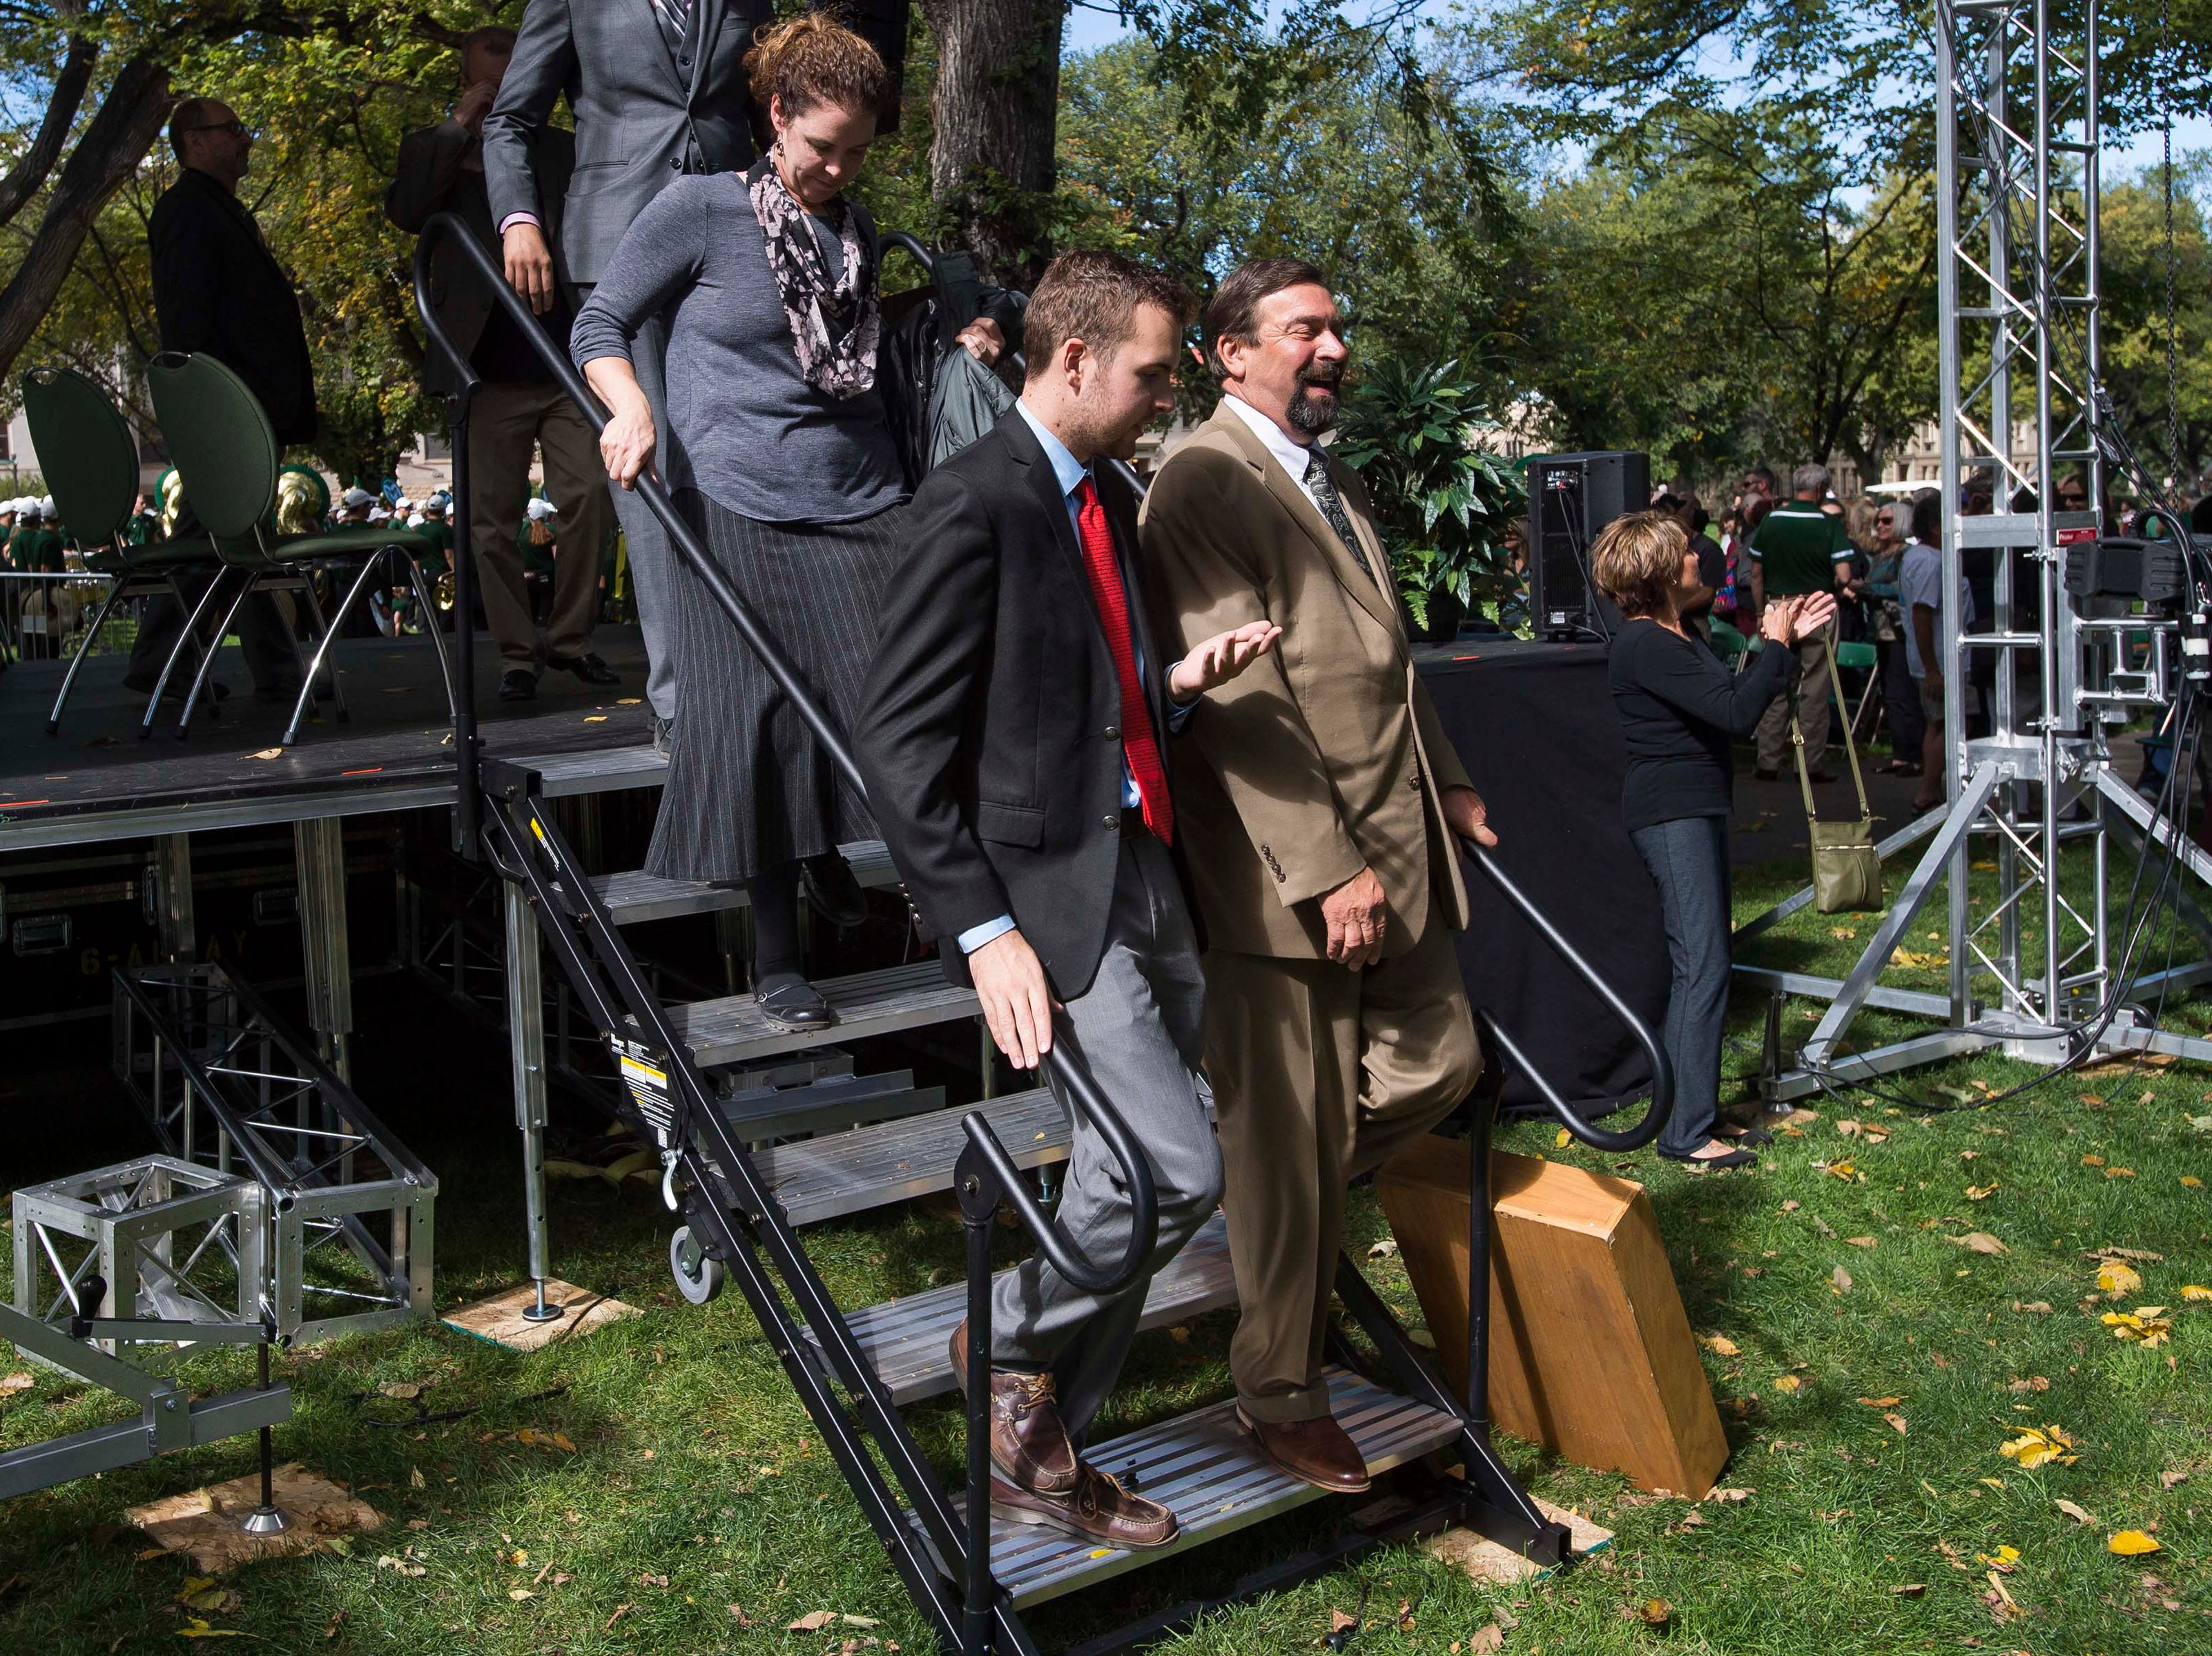 Colorado State University President Tony Frank leaves the stage after speaking to an audience on Wednesday, Oct. 3, 2018, at the 2018 fall address on the CSU campus in Fort Collins, Colo.